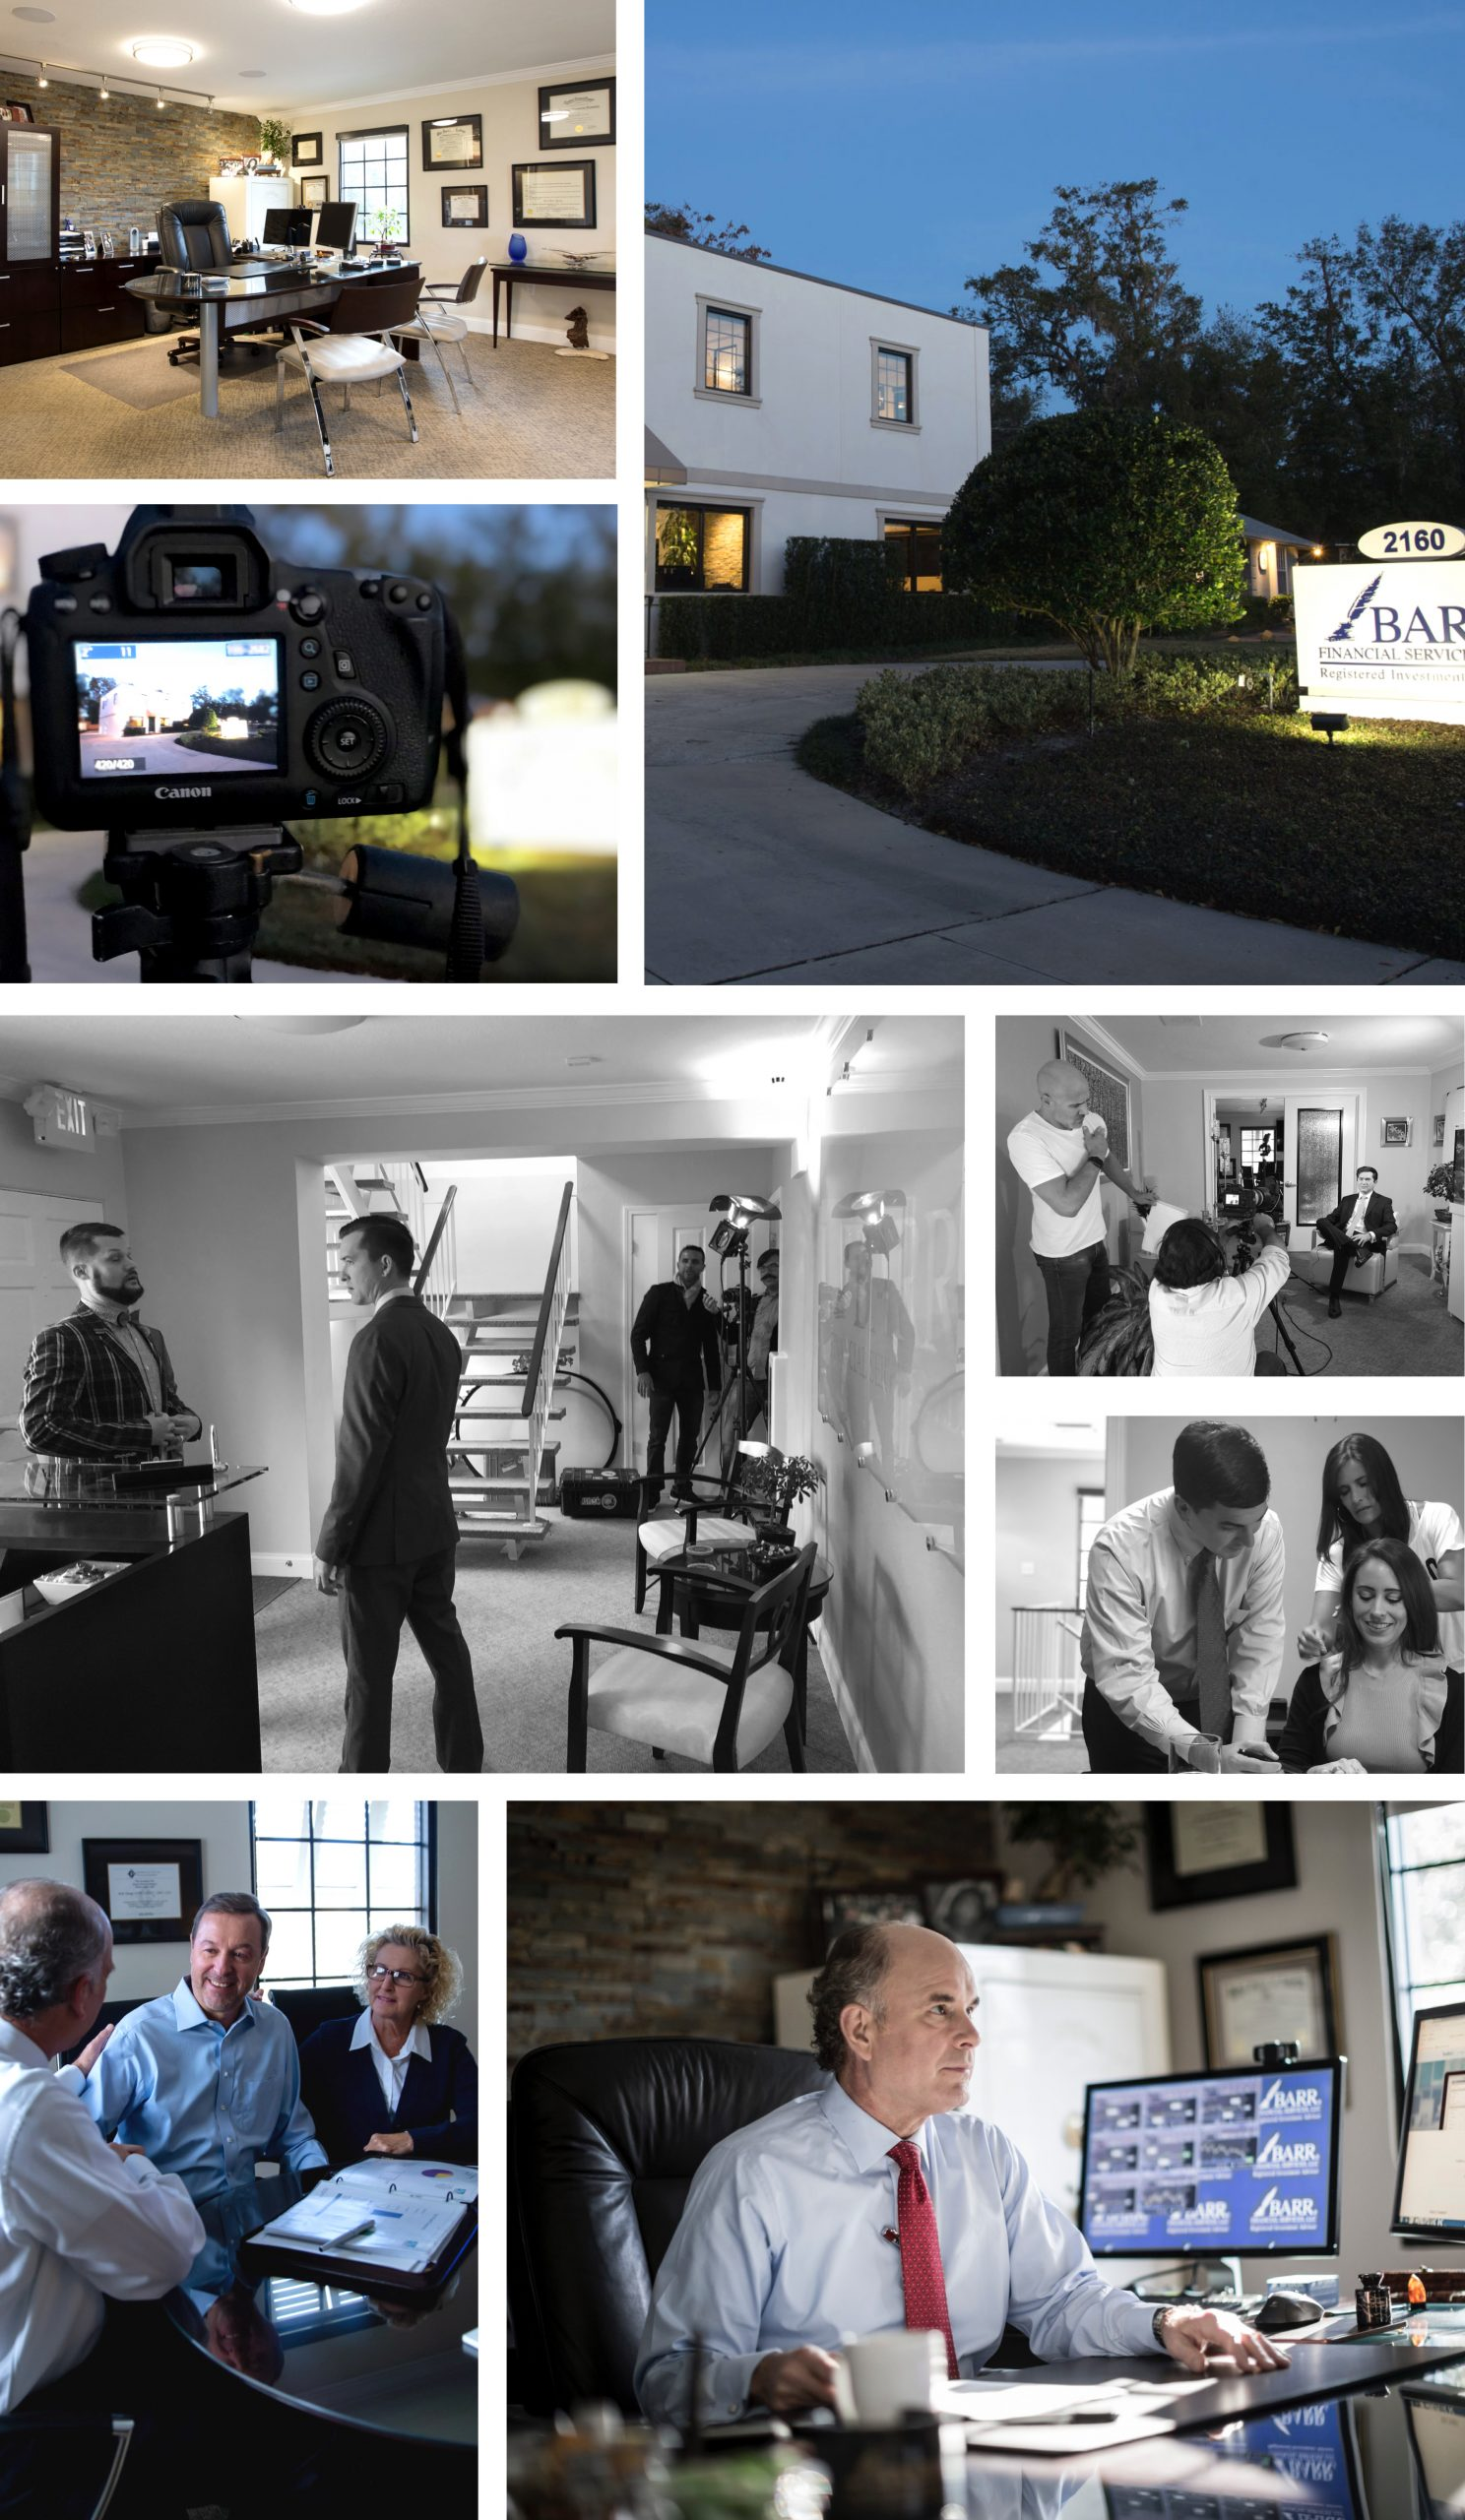 BARR Financial Services Multimedia Production